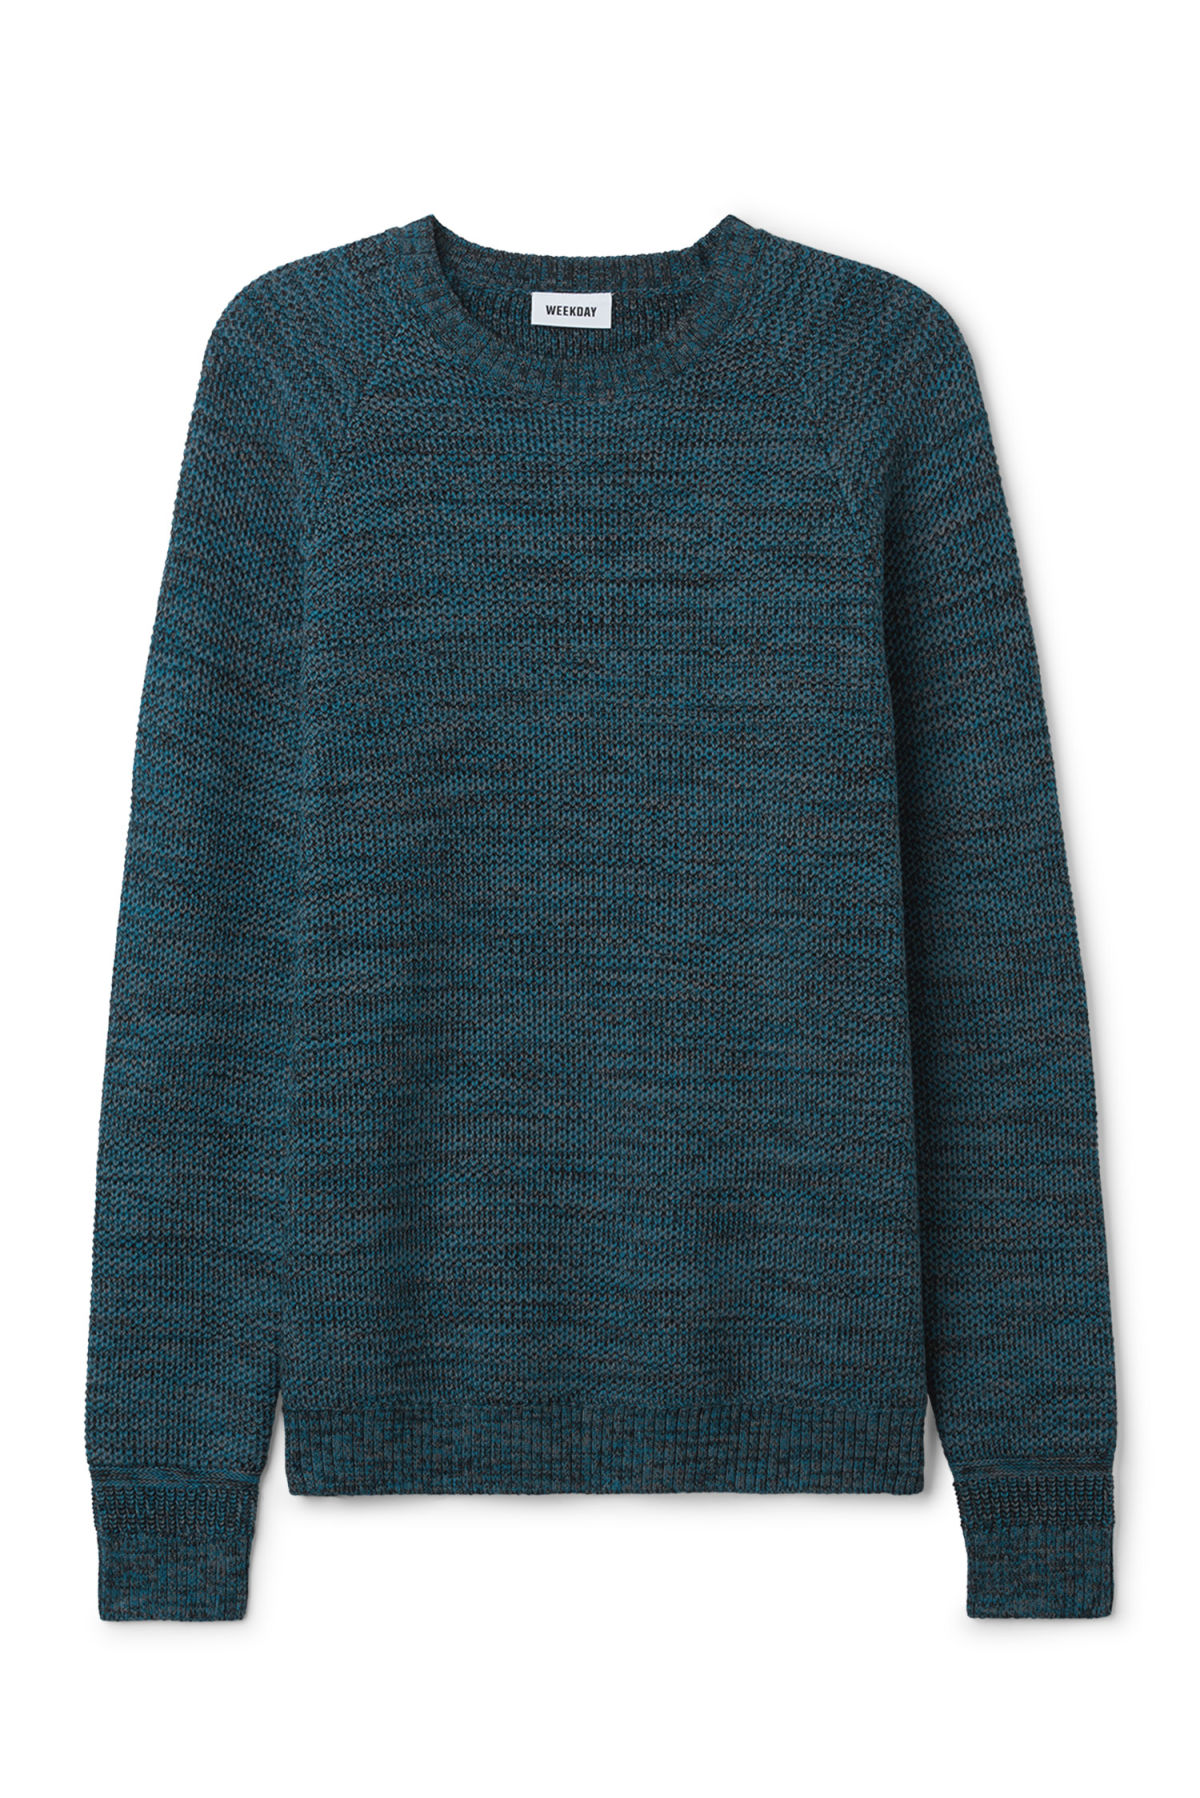 Front image of Weekday cave sweater in blue